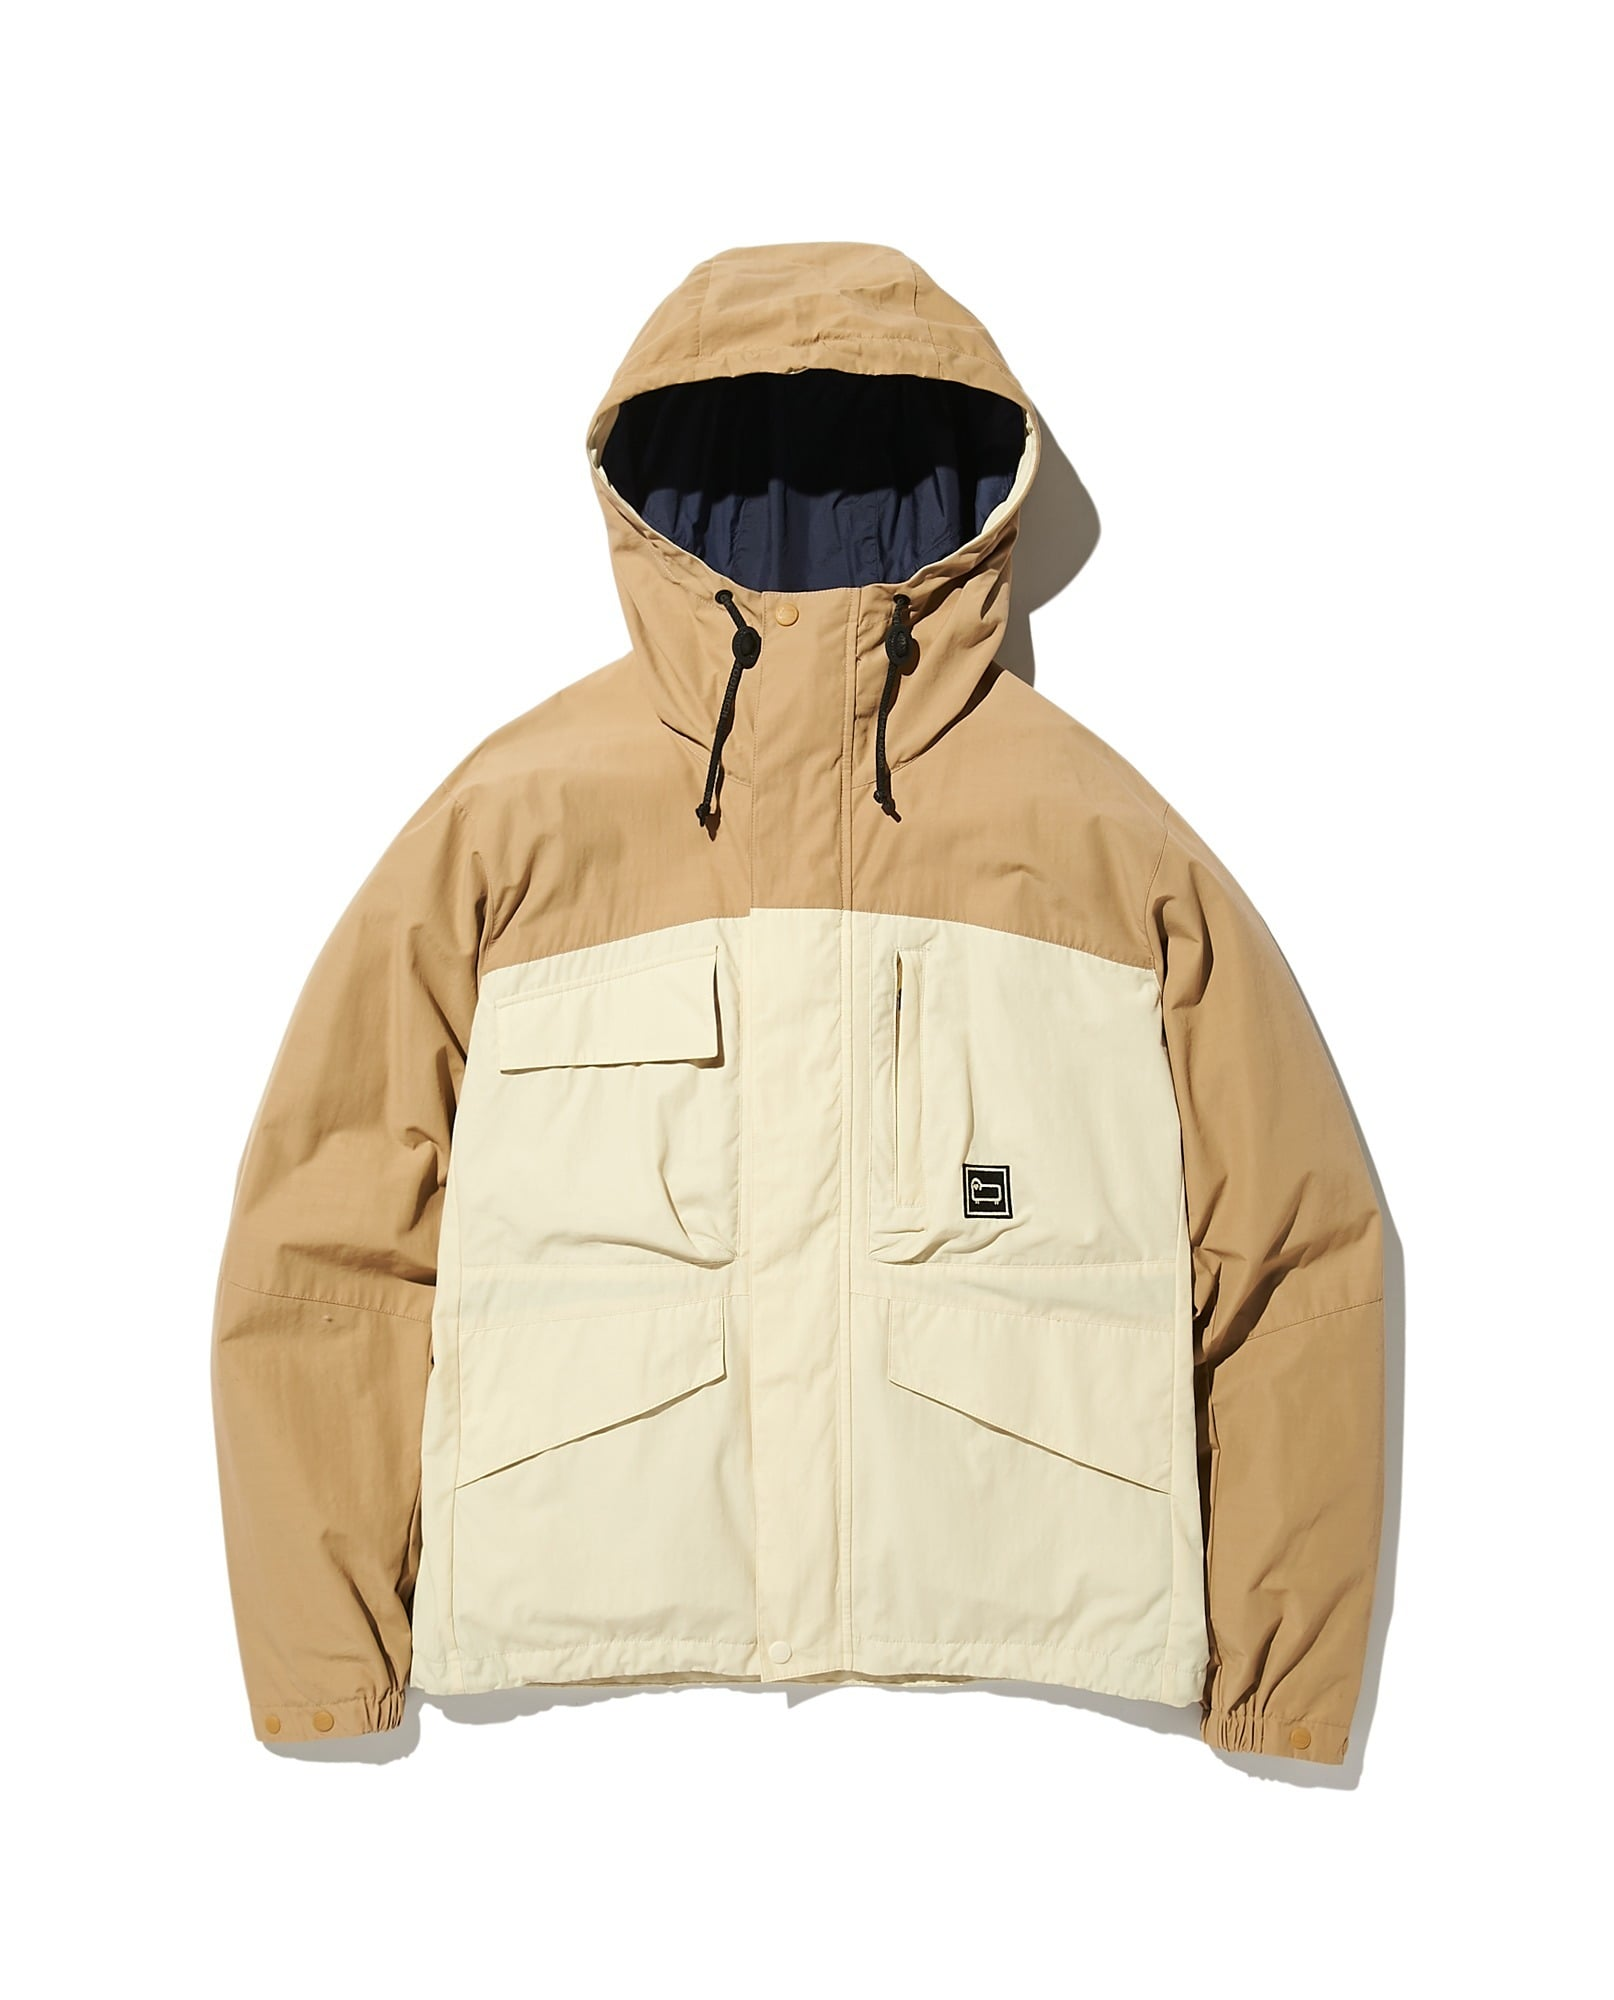 MOUNTAIN STROLL JACKET